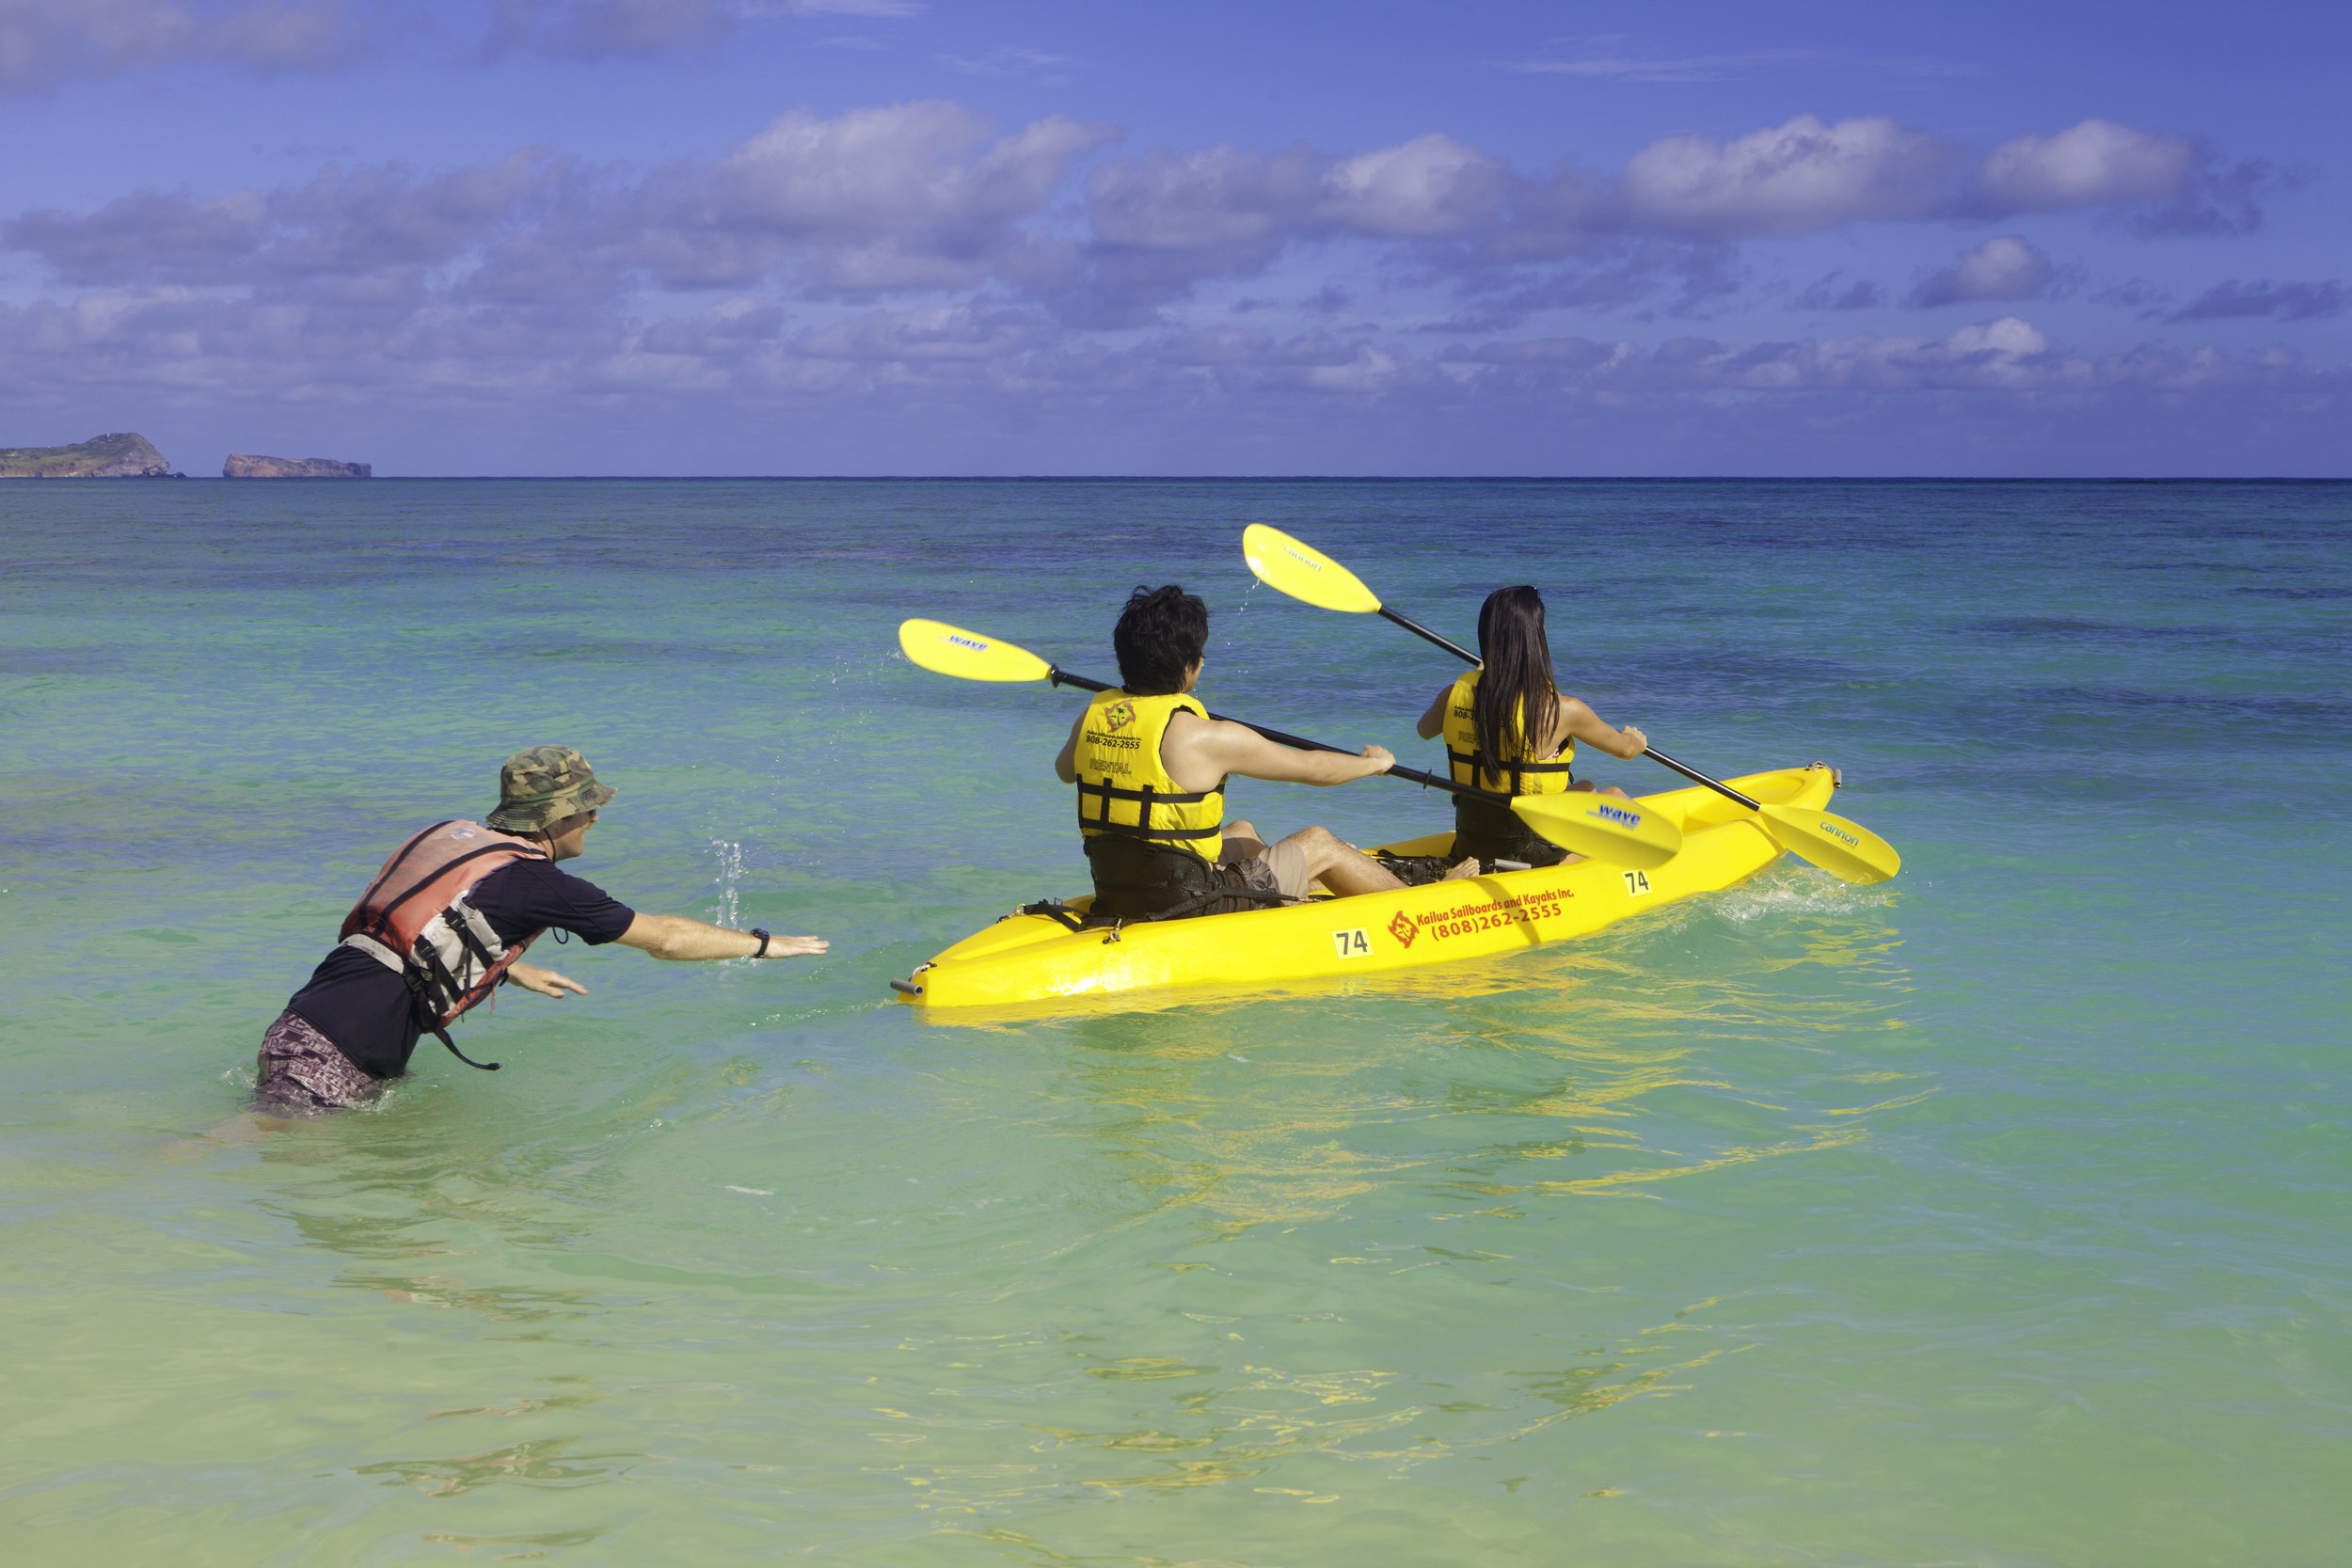 $139 - 2 Hour Guided Kayak Tour